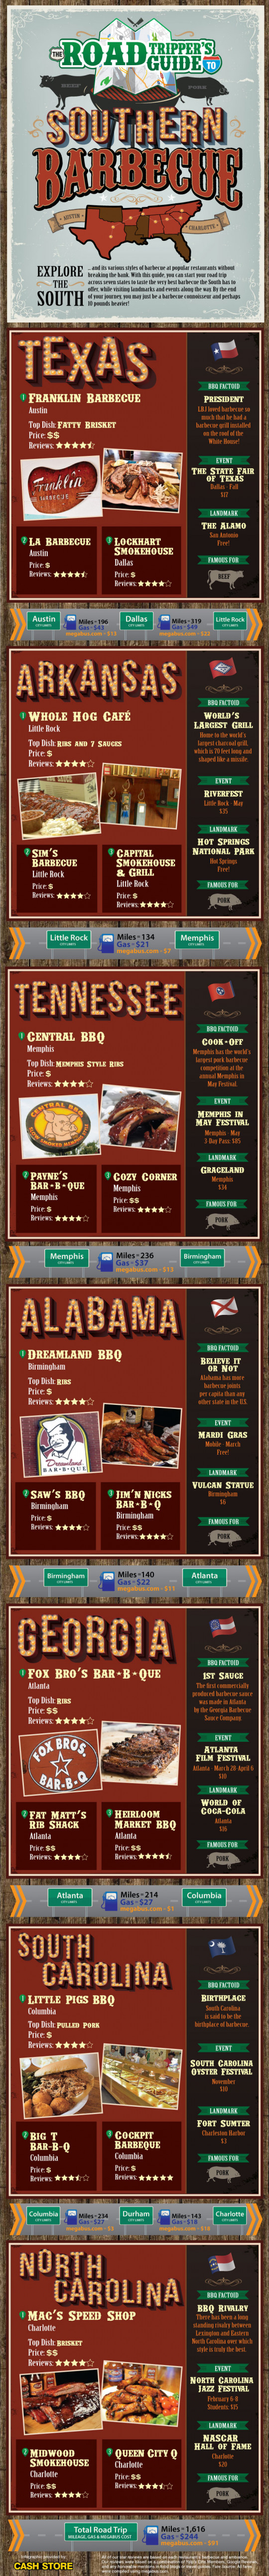 The Road-Trippers Guide to Southern Barbecue